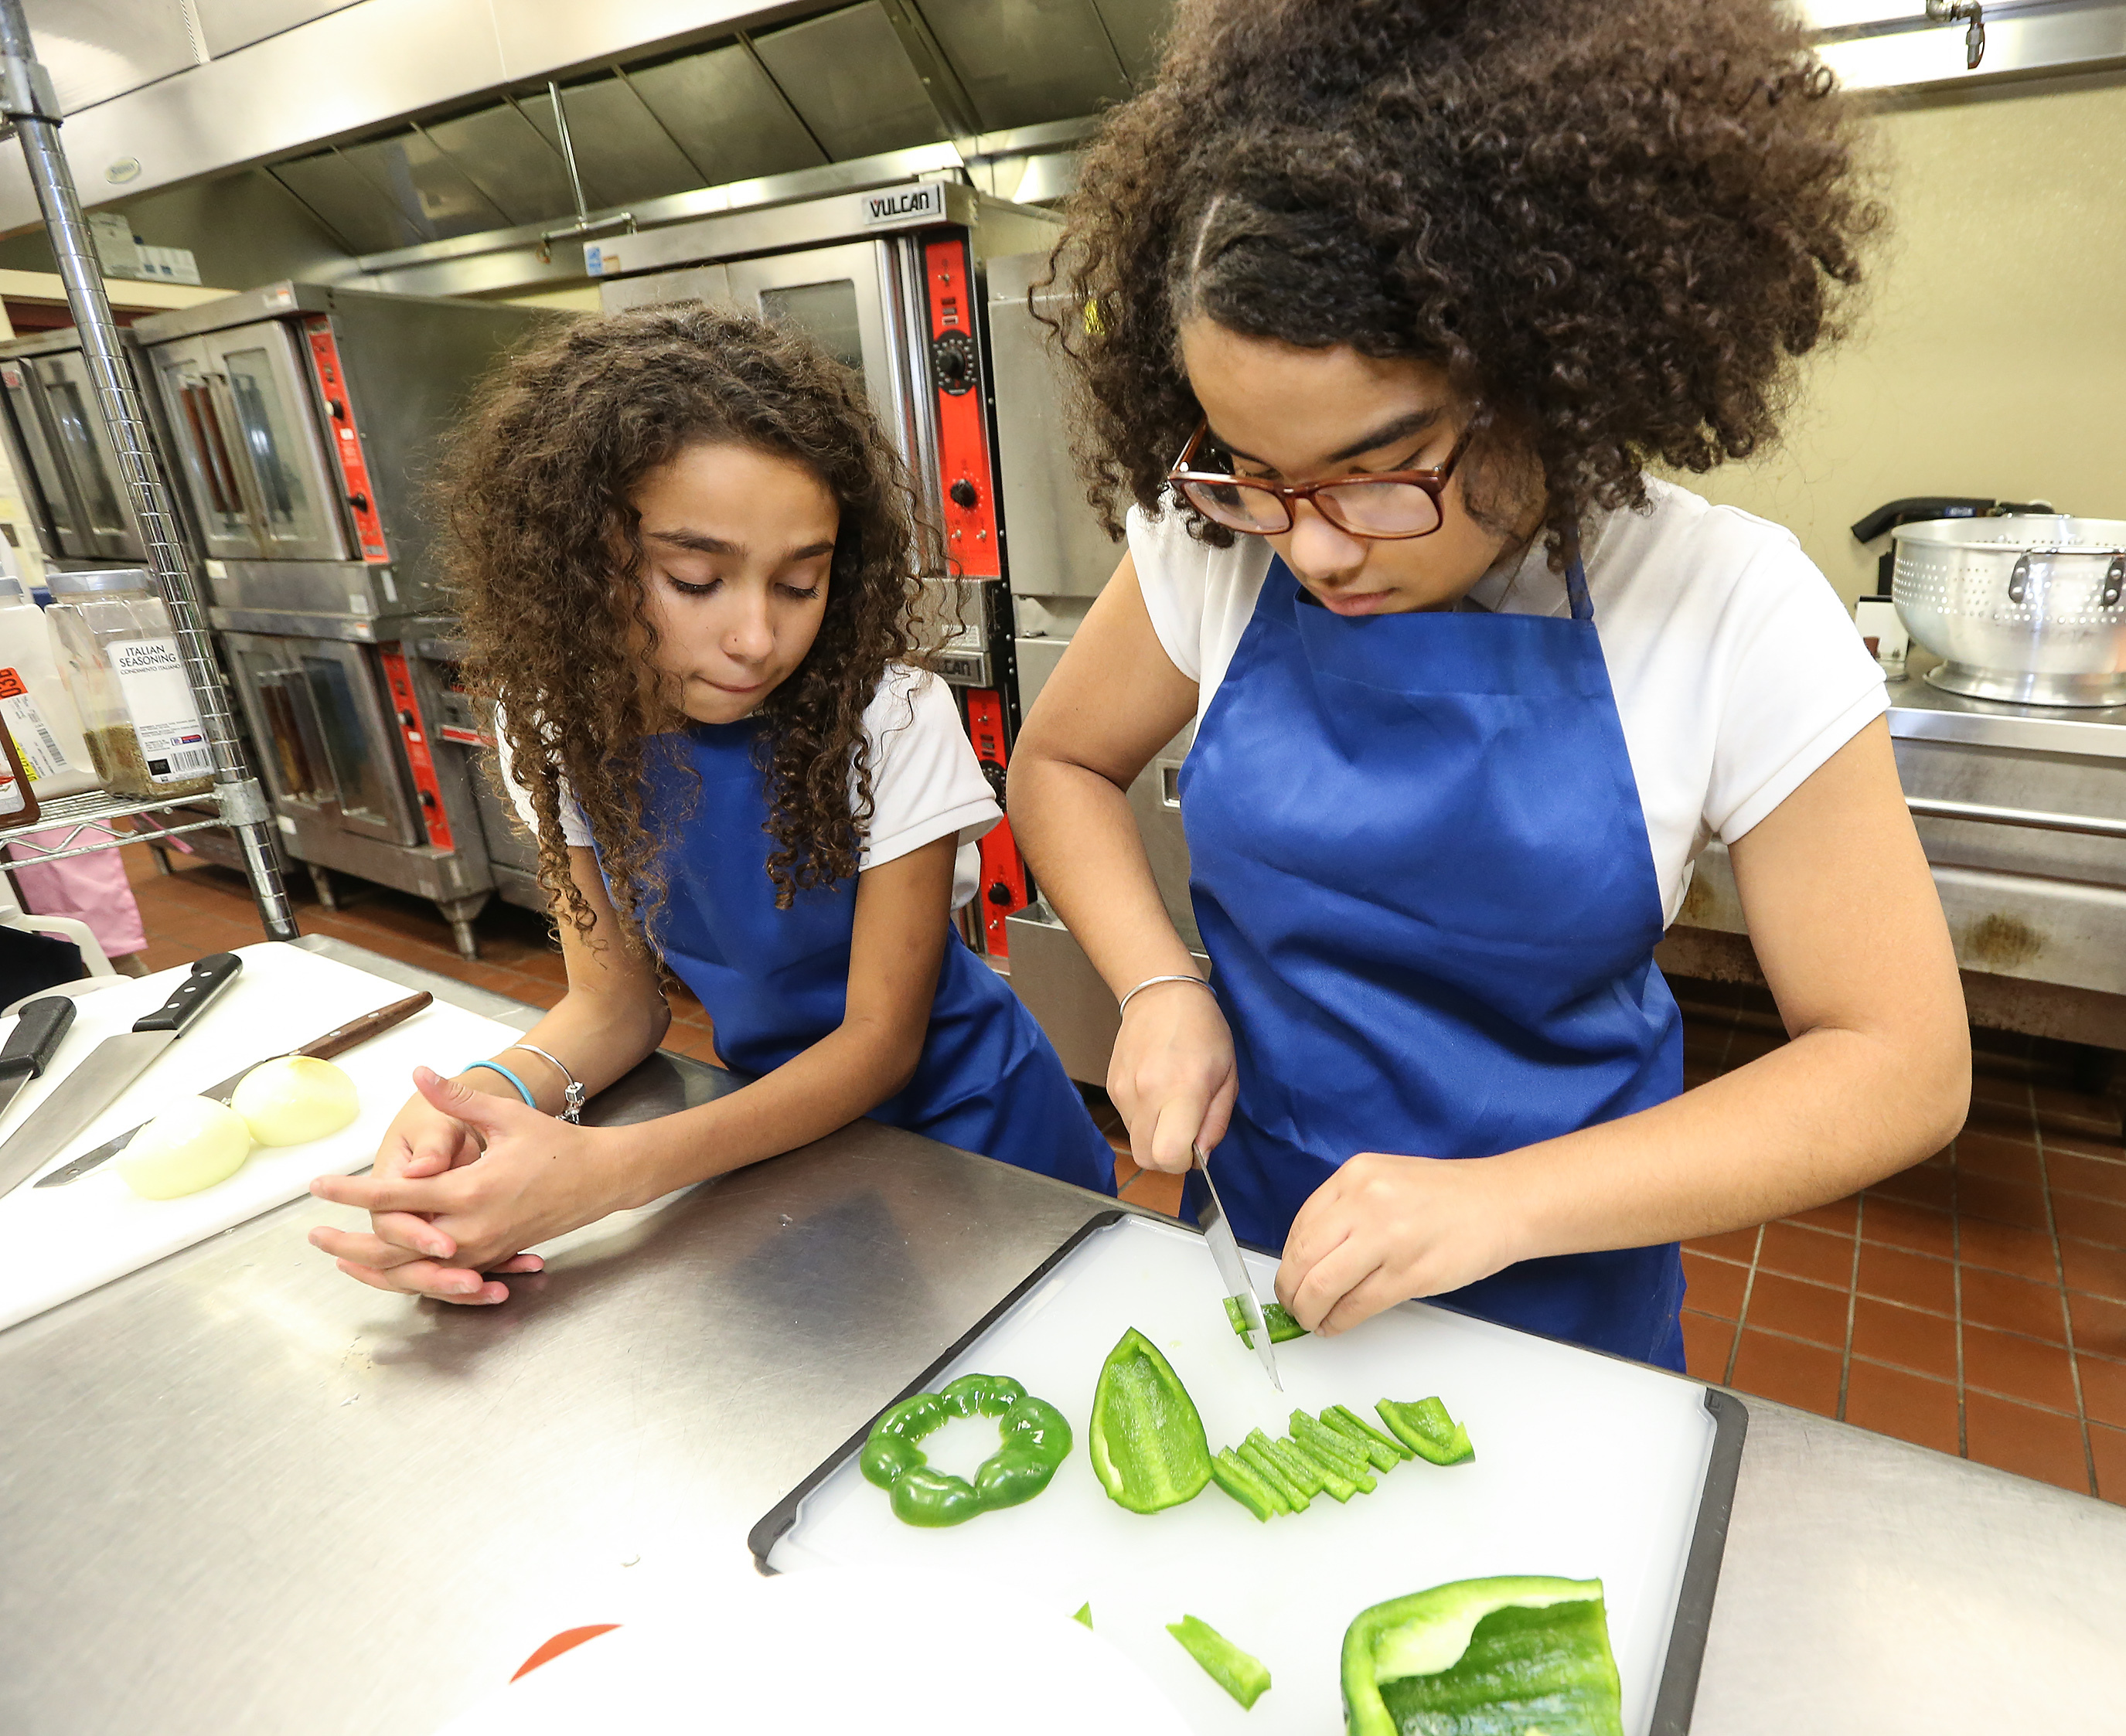 Jailee Torres, 6th grade, watches Chrismeilin Acosta, 8th grade cut peppers while prepping the ingredients for beef stir fry.